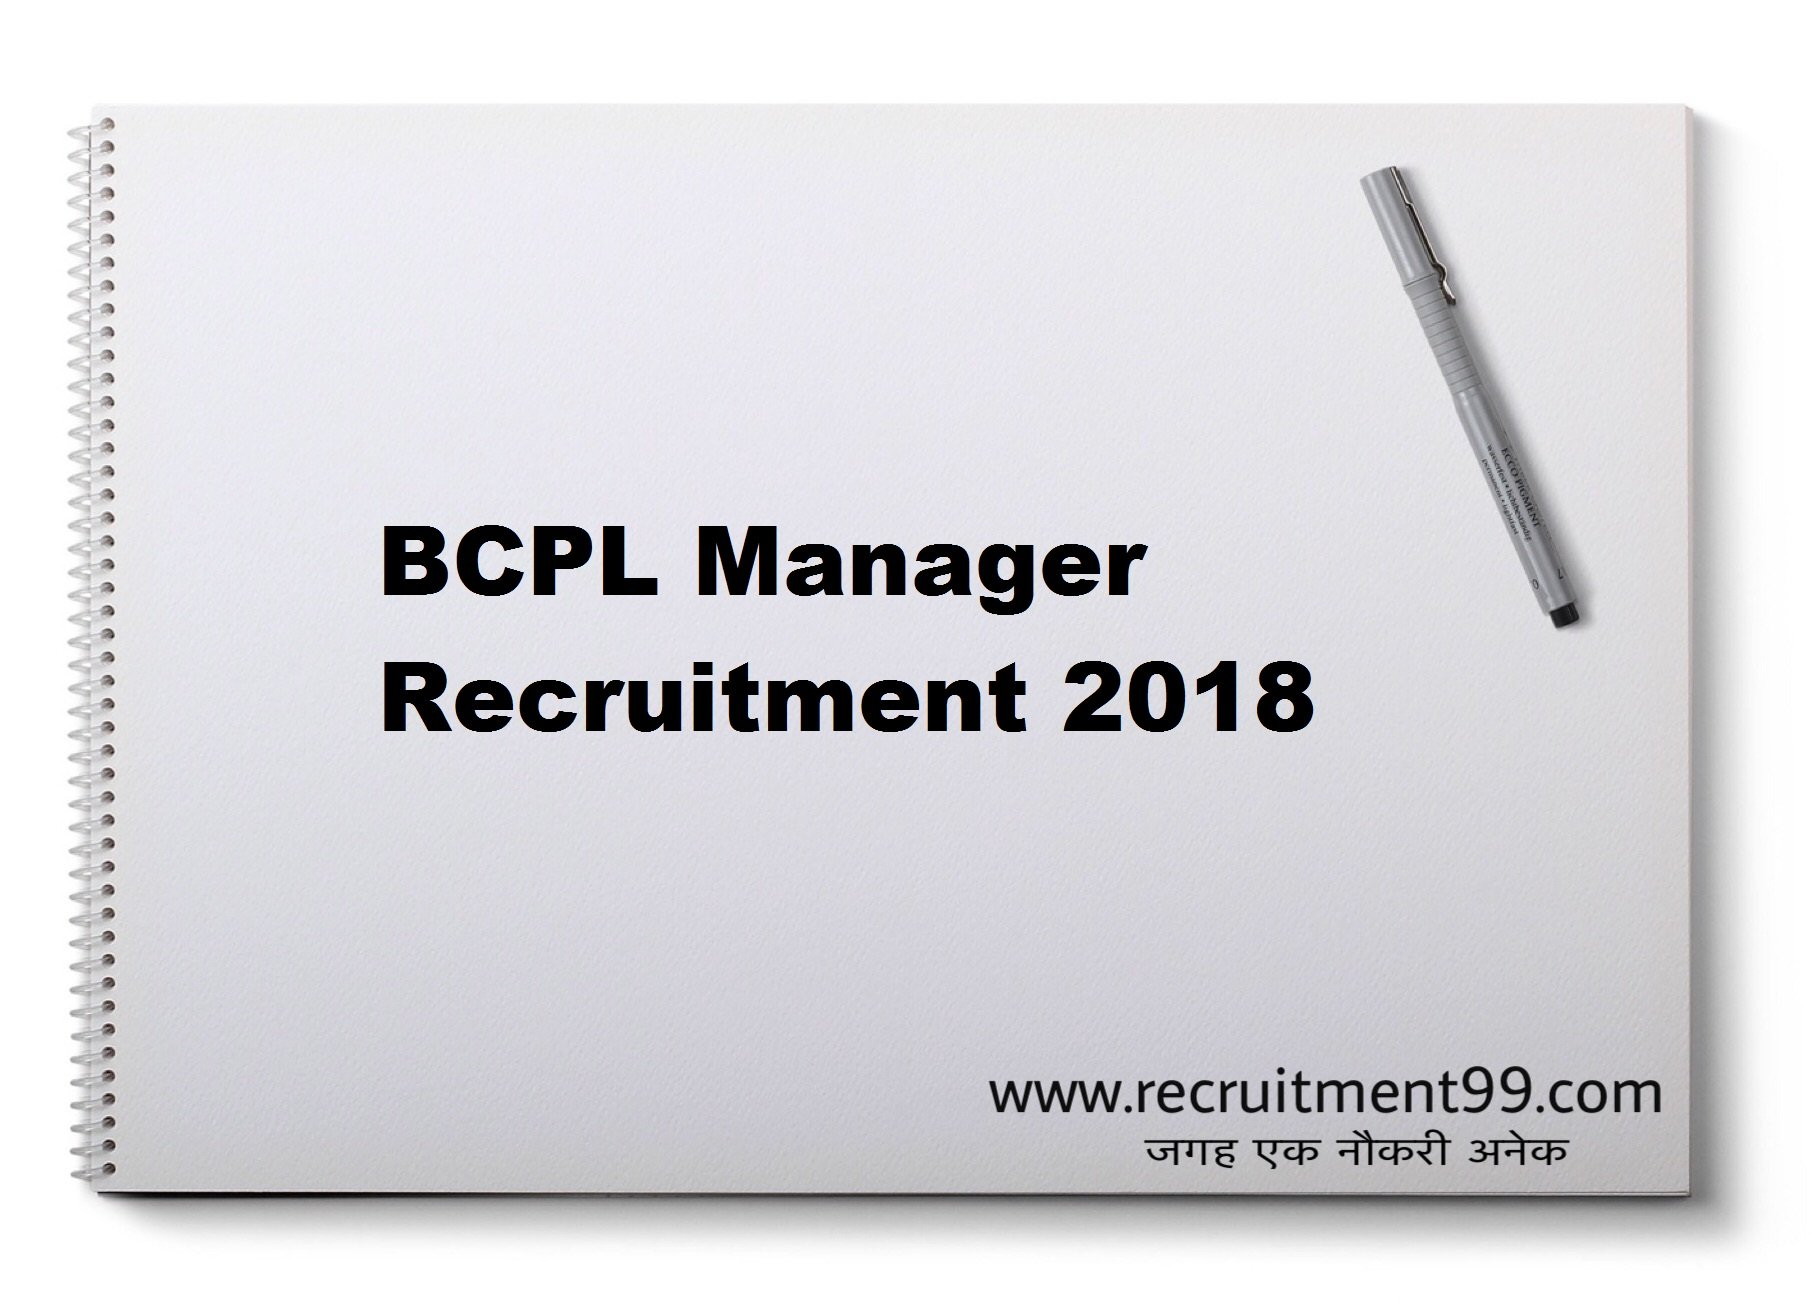 BCPL Manager Recruitment Admit Card Result 2018